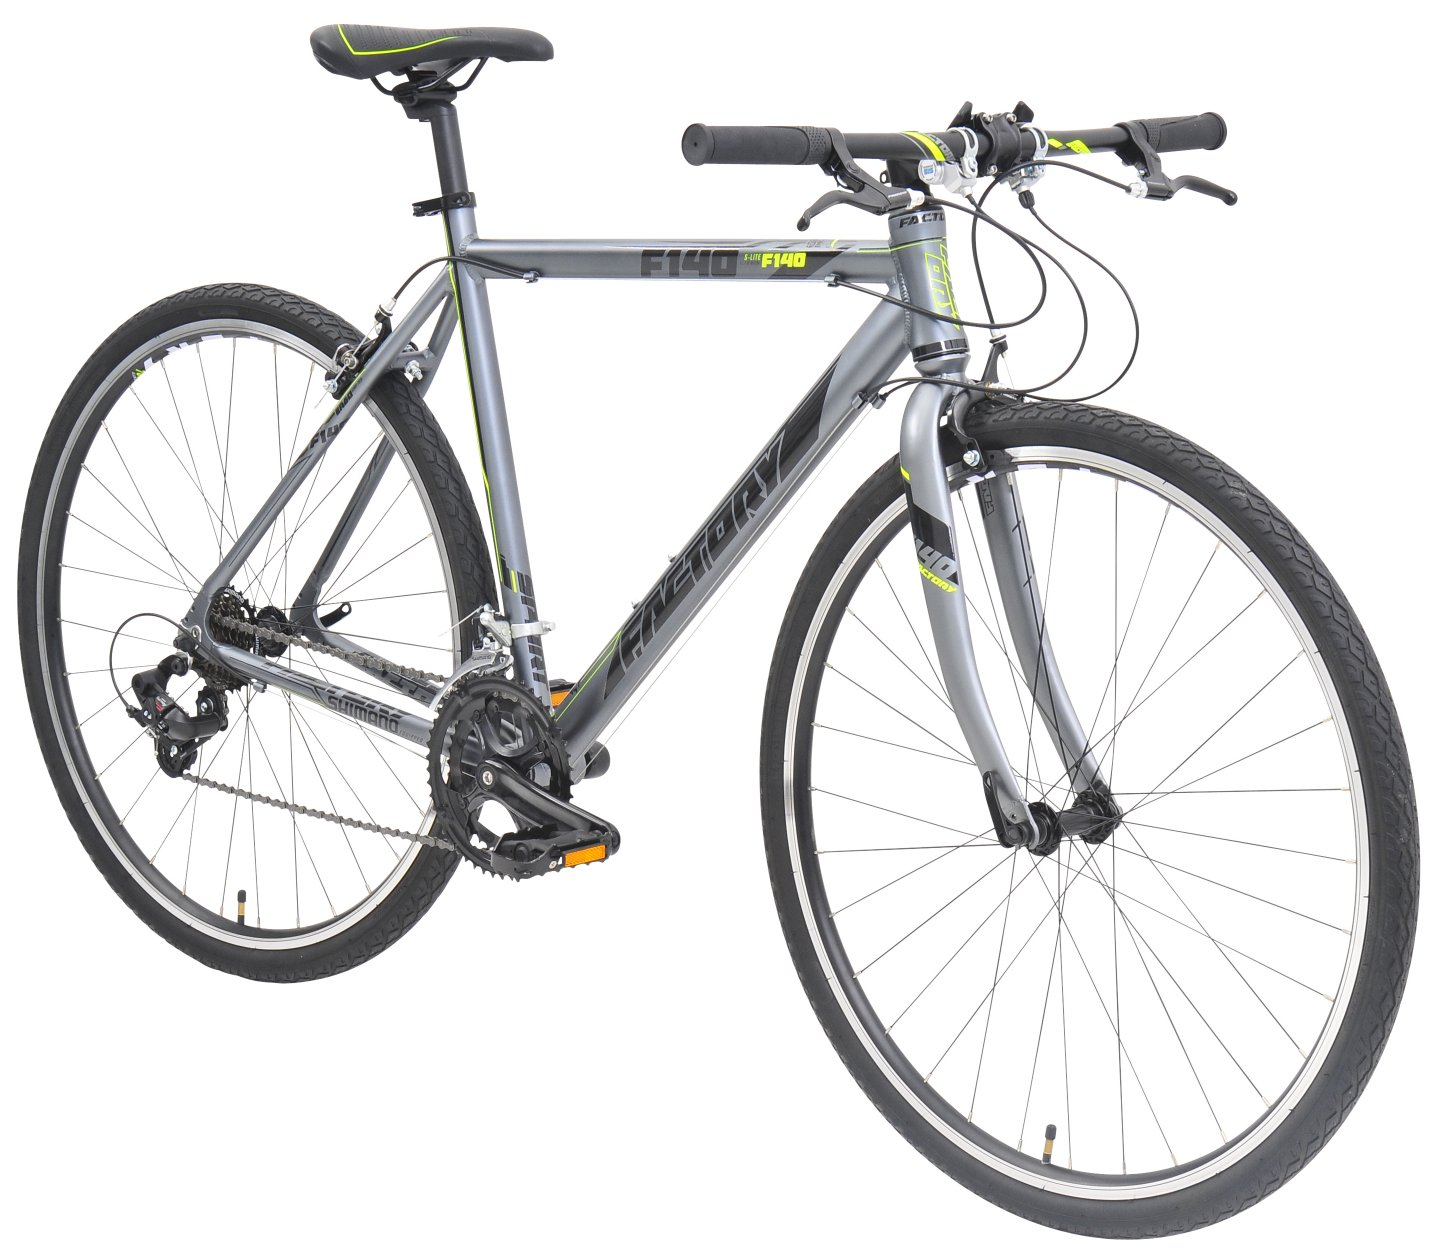 Factory Bicycles F140 Flatbar 14 Speed Road Bike GreyBlack